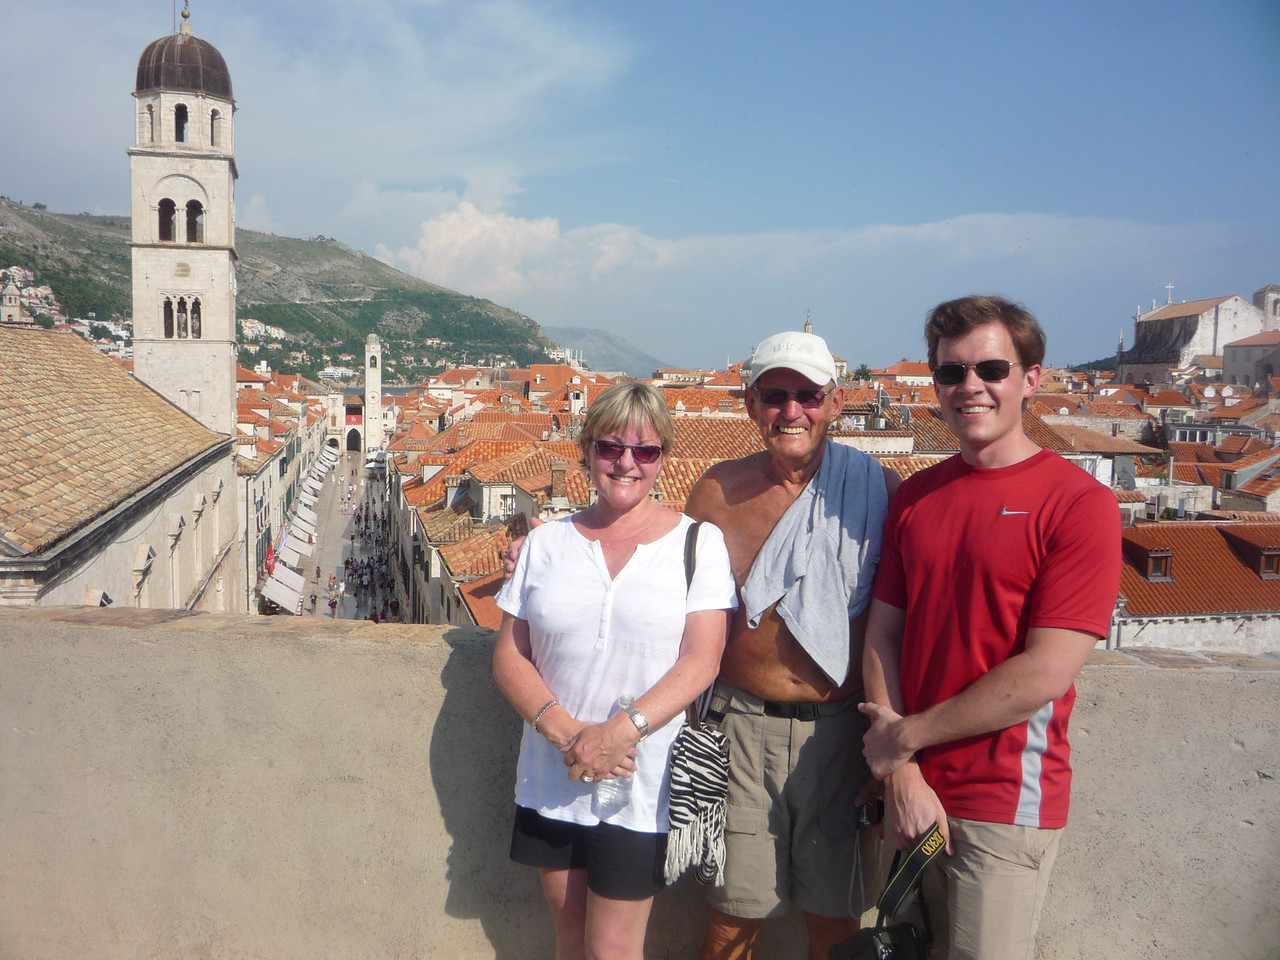 On the Old Town Wall in Dubrovnik